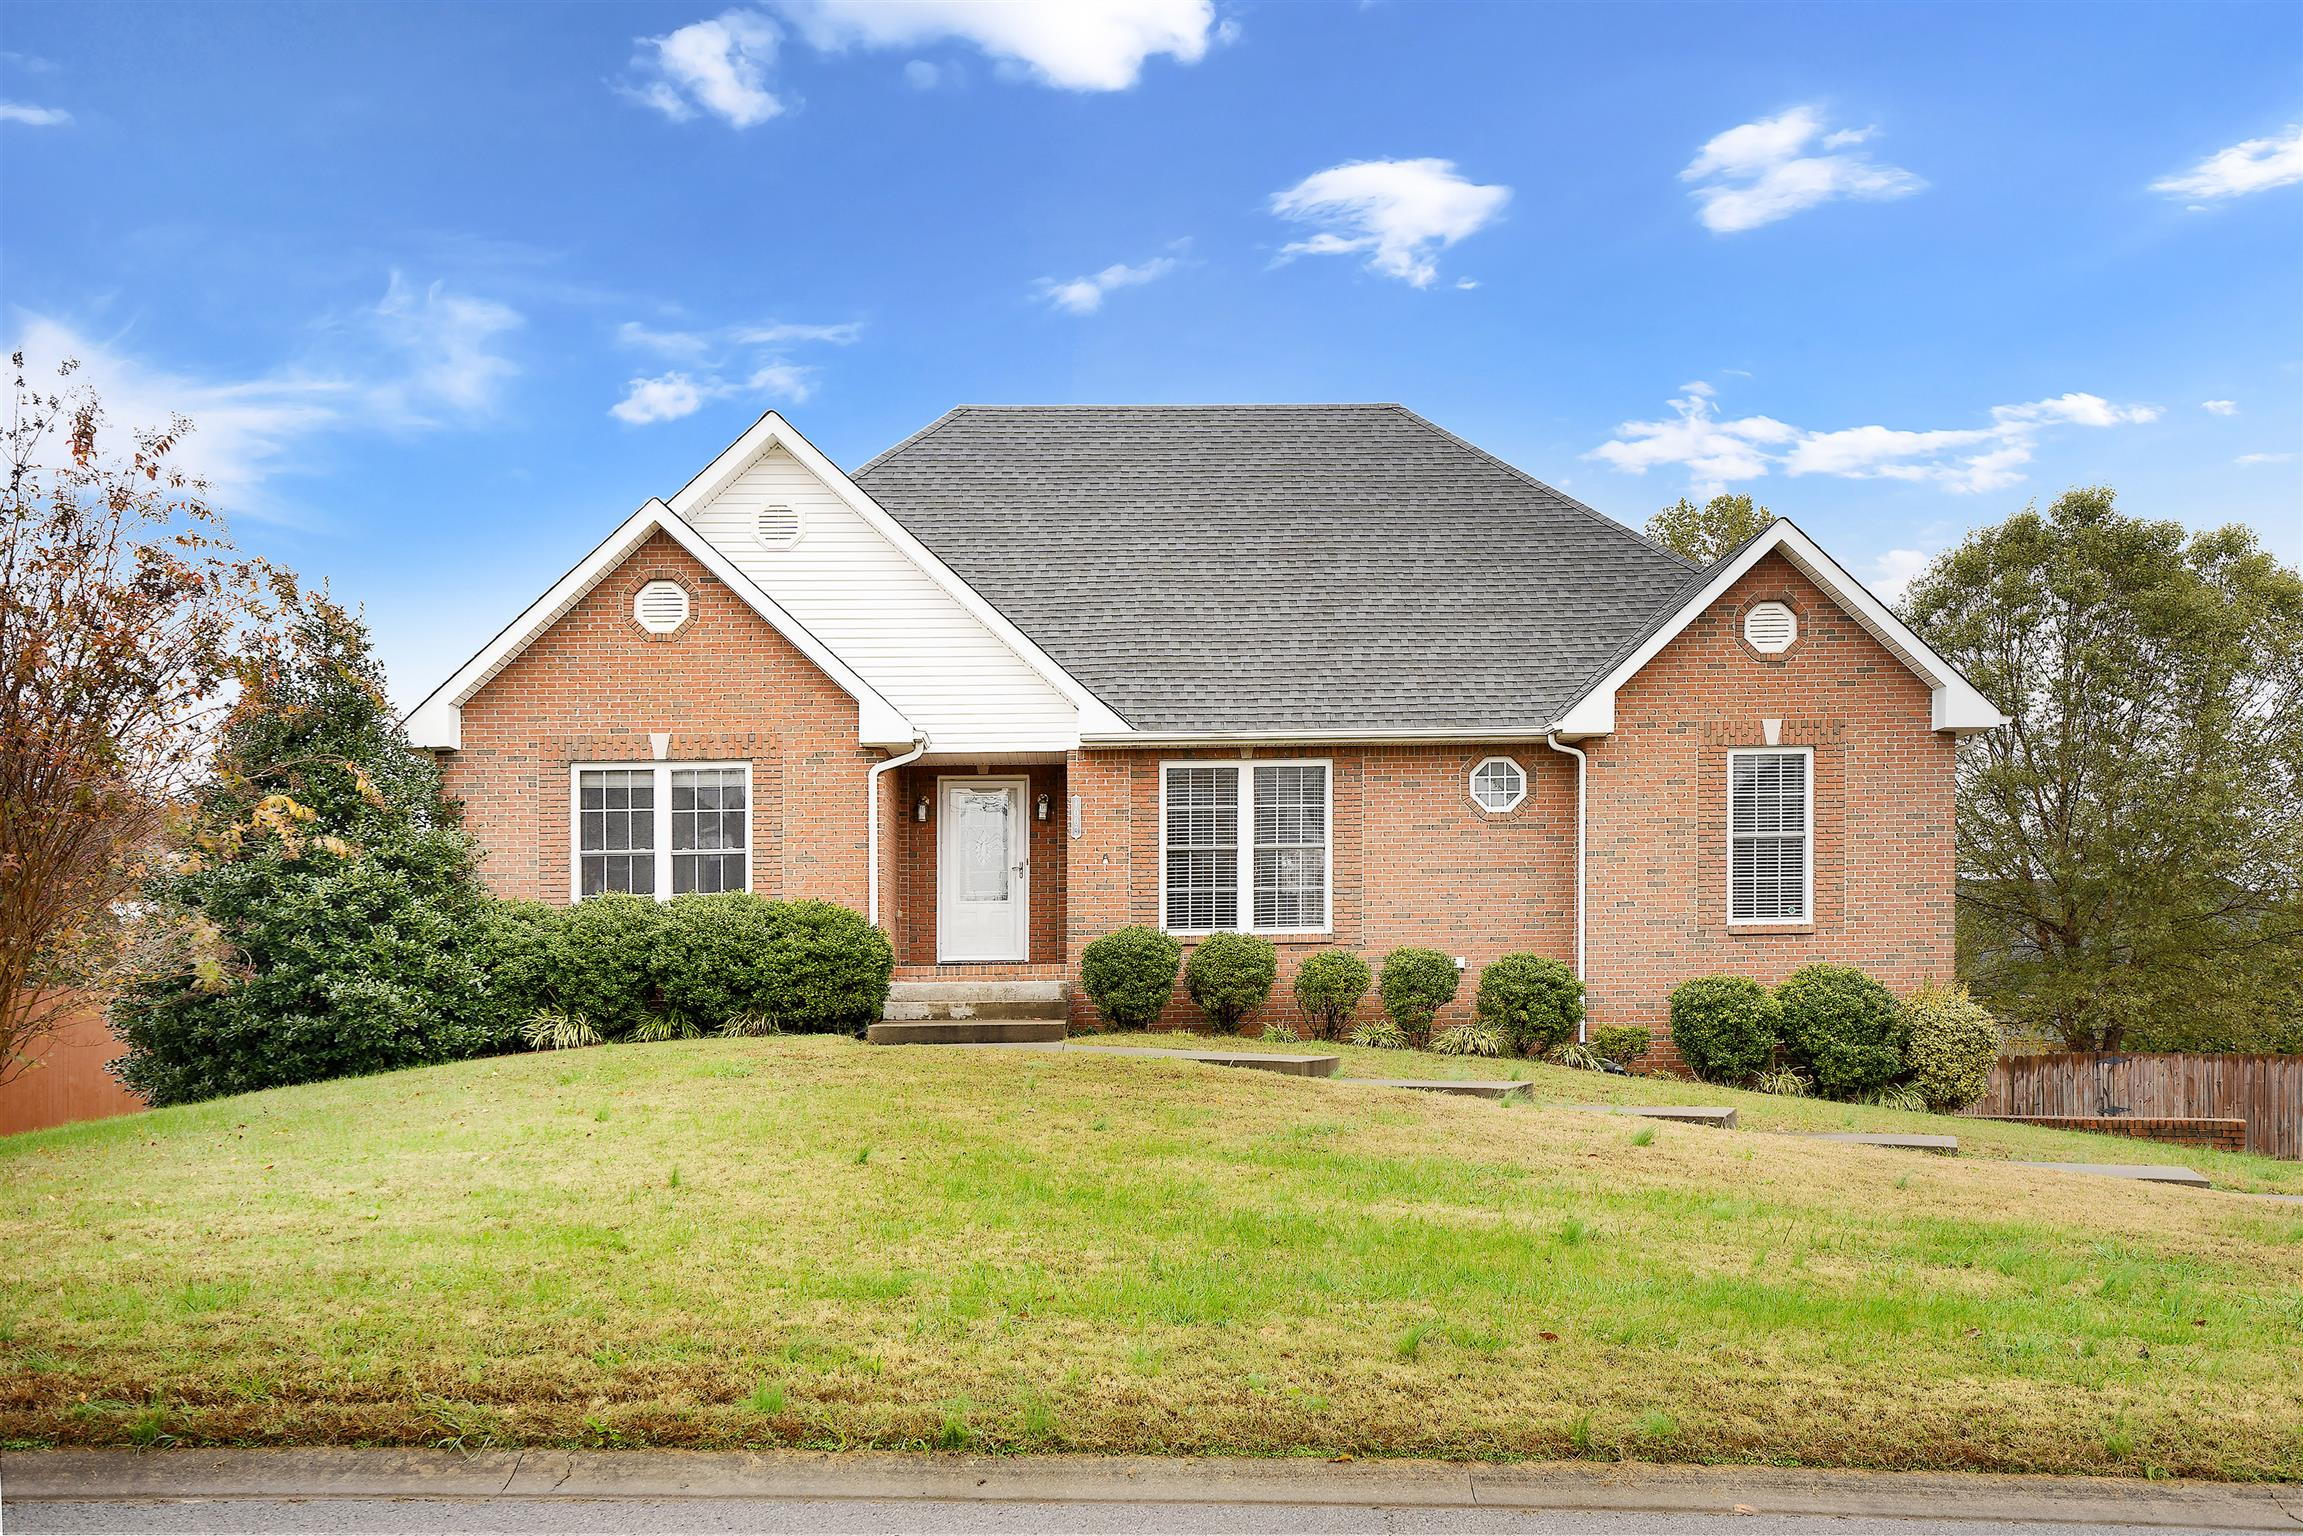 1003 Trevor Dr, Clarksville in Montgomery County County, TN 37043 Home for Sale